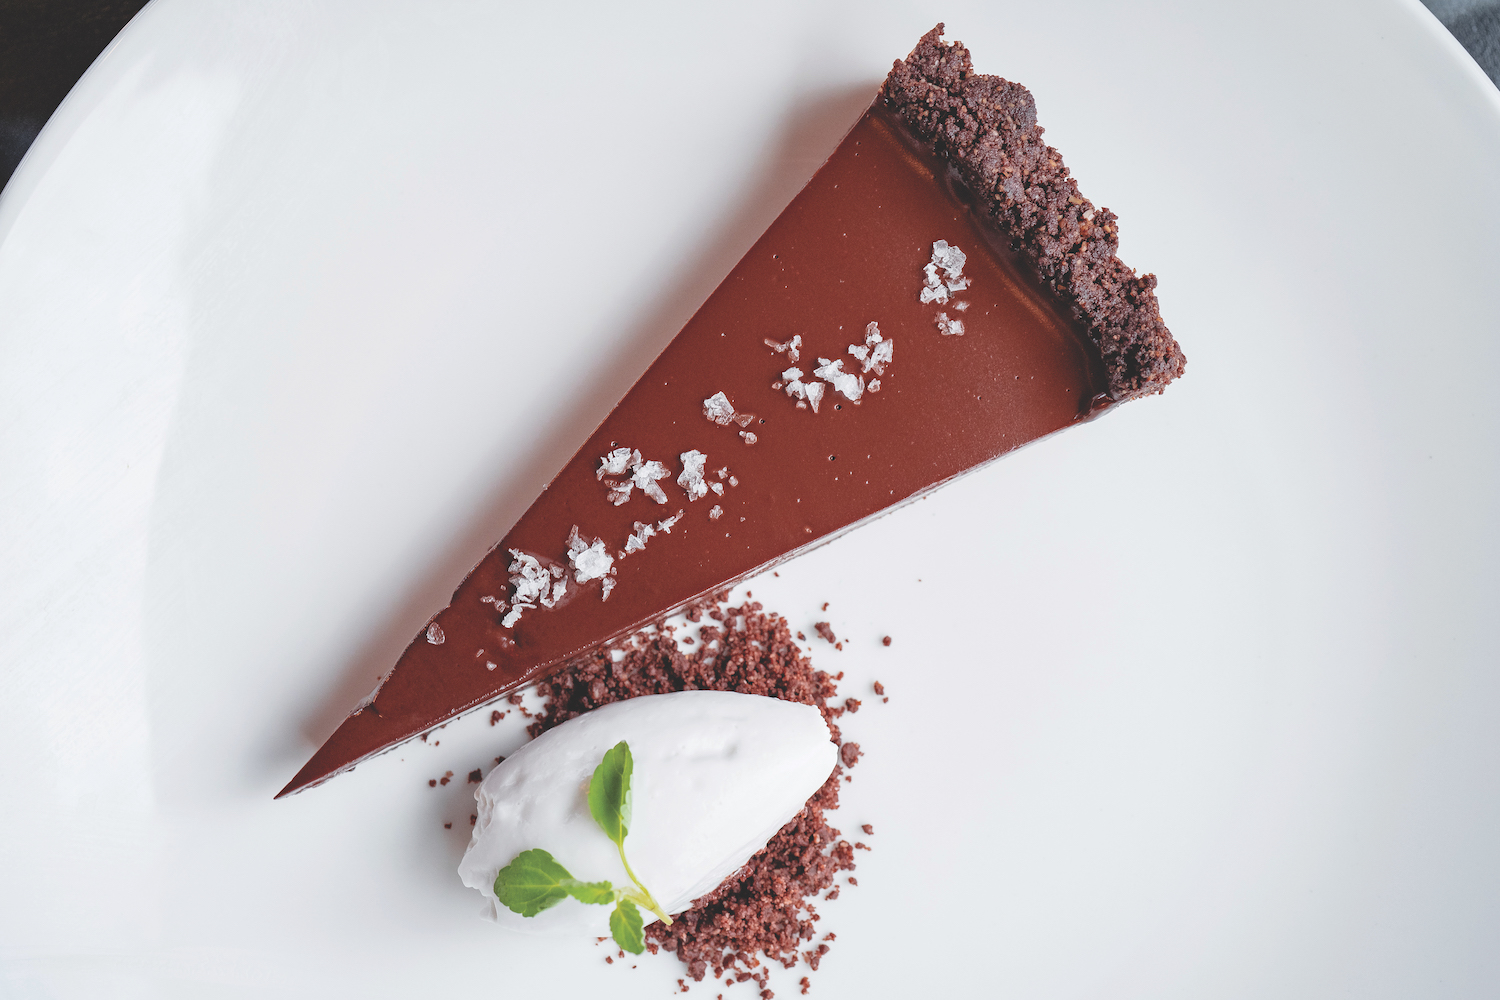 The vegan and gluten-free chocolate torte with house-made whipped cream